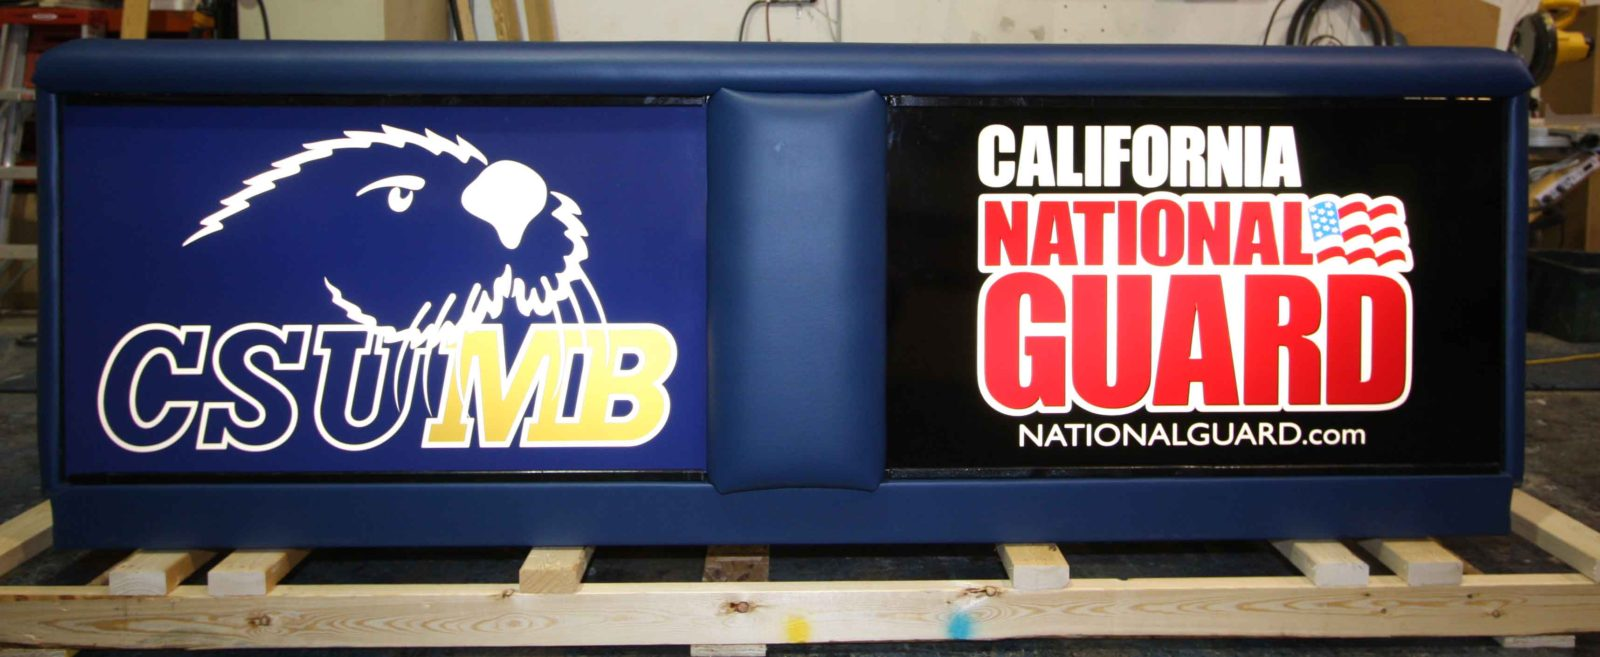 California National Guard Scoring Table